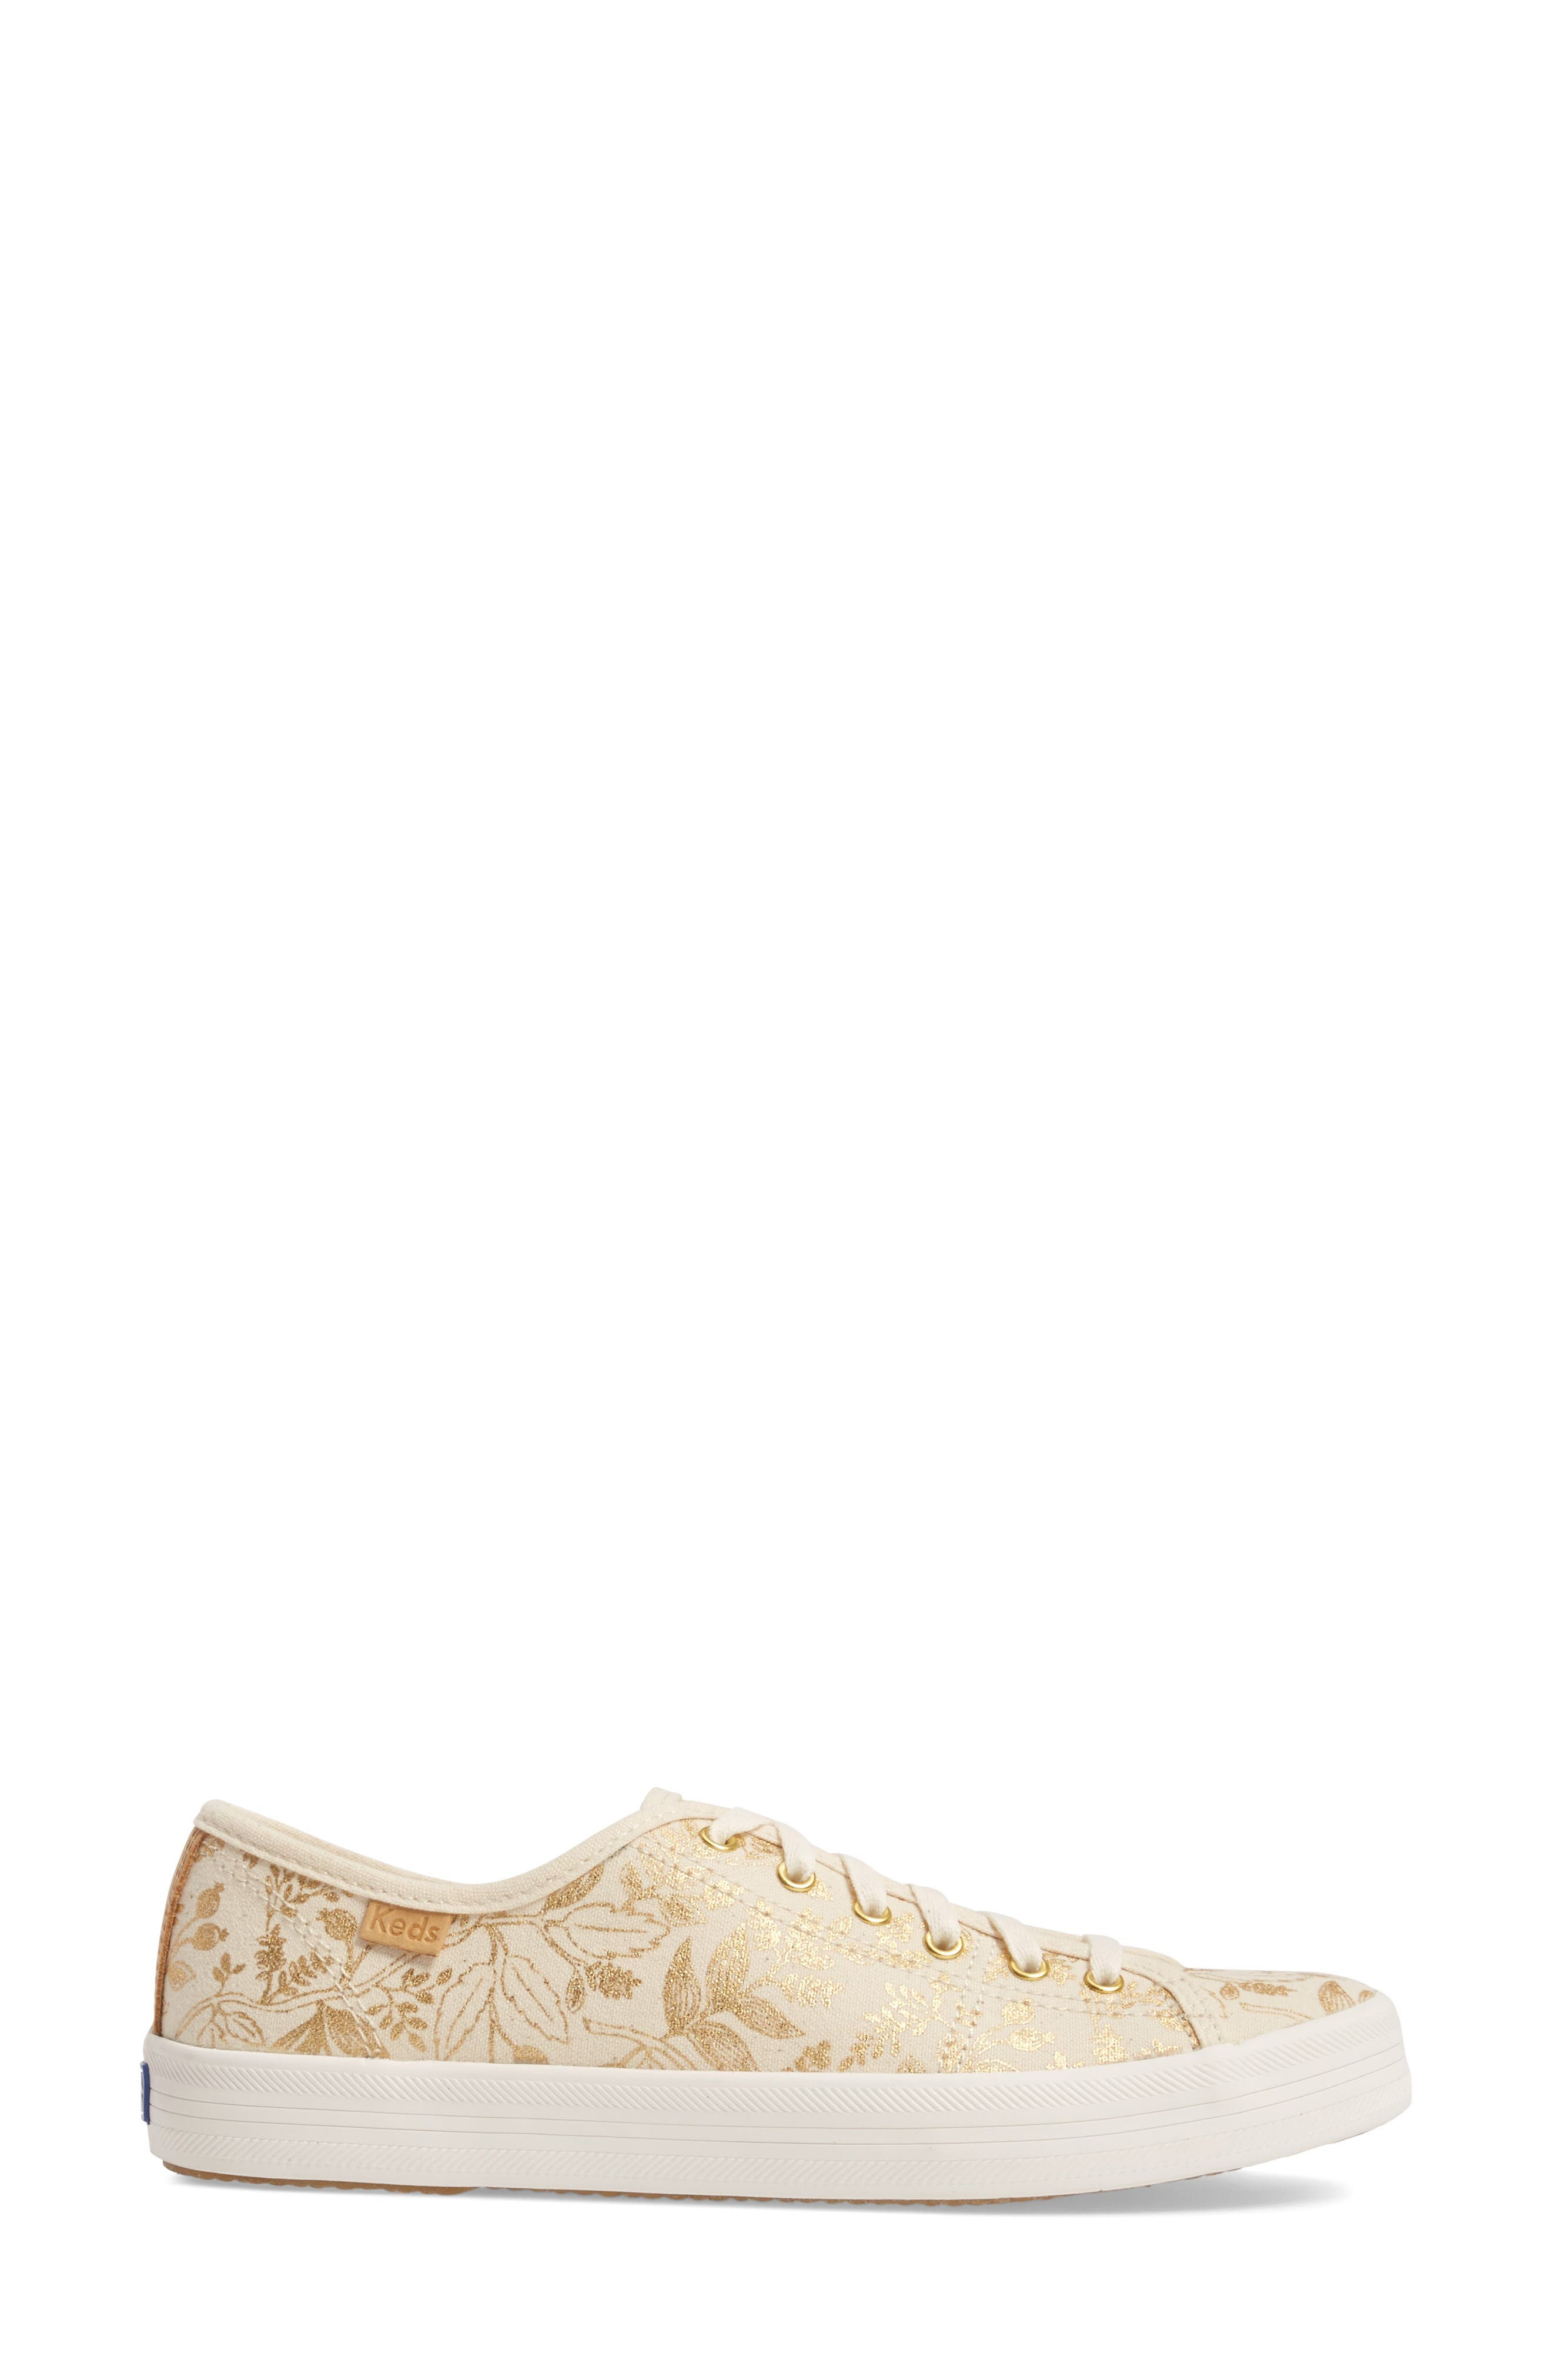 x Rifle Paper Co. Queen Anne Sneaker,                             Alternate thumbnail 3, color,                             Natural